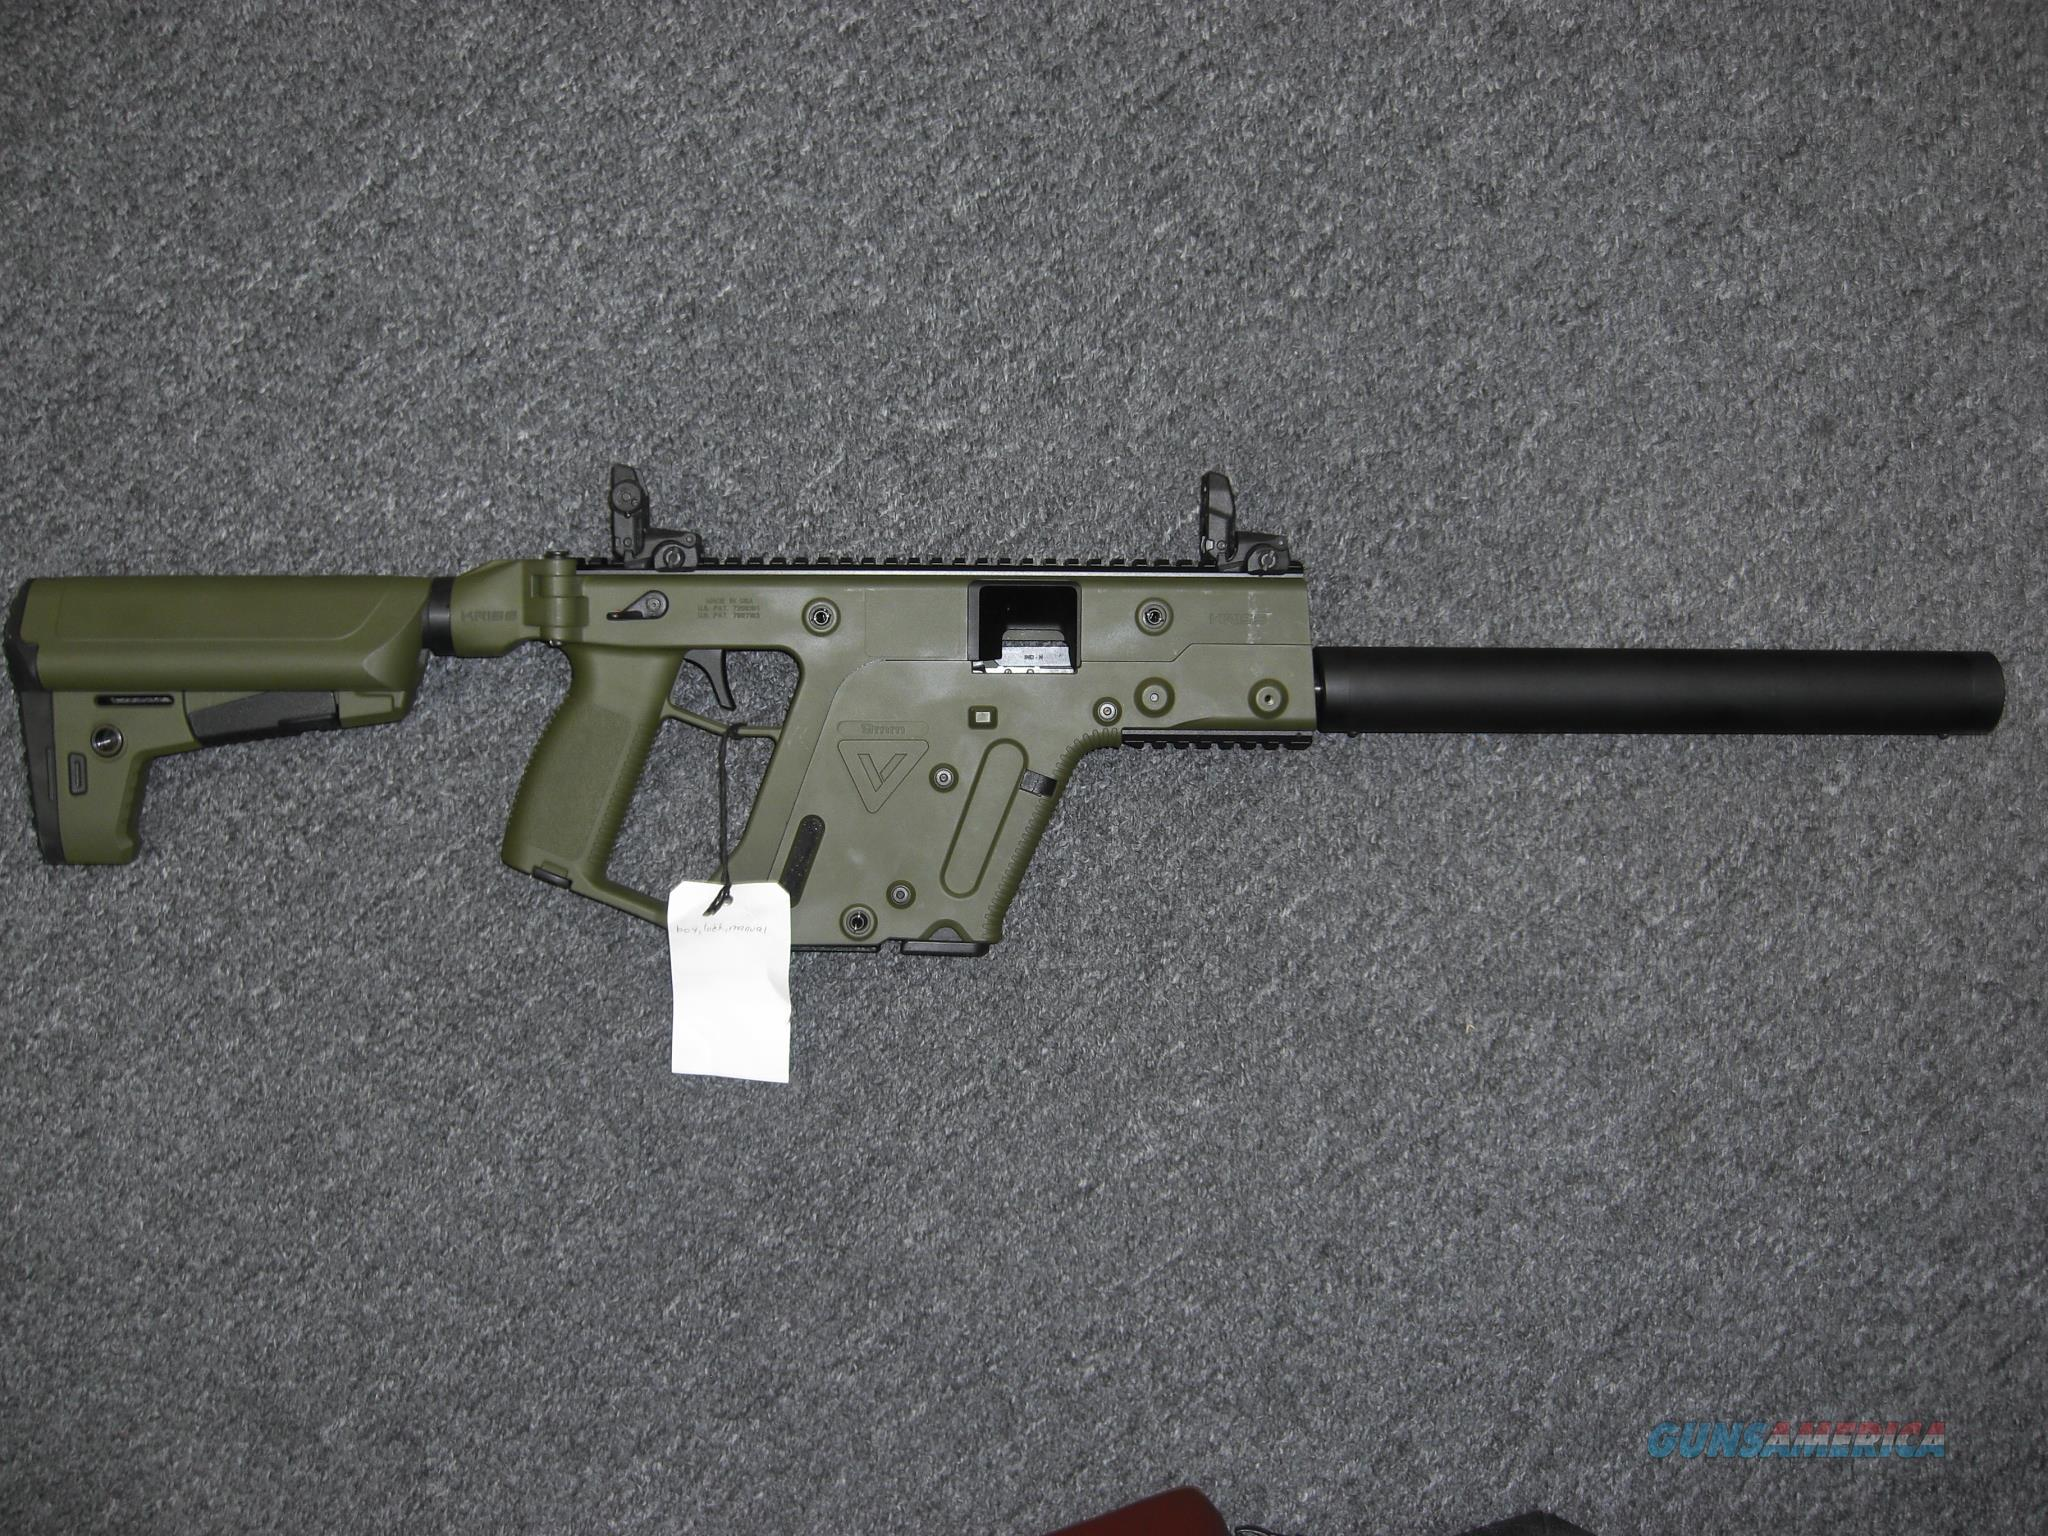 Kriss Vector CRB G2  Guns > Rifles > Kriss Tactical Rifles